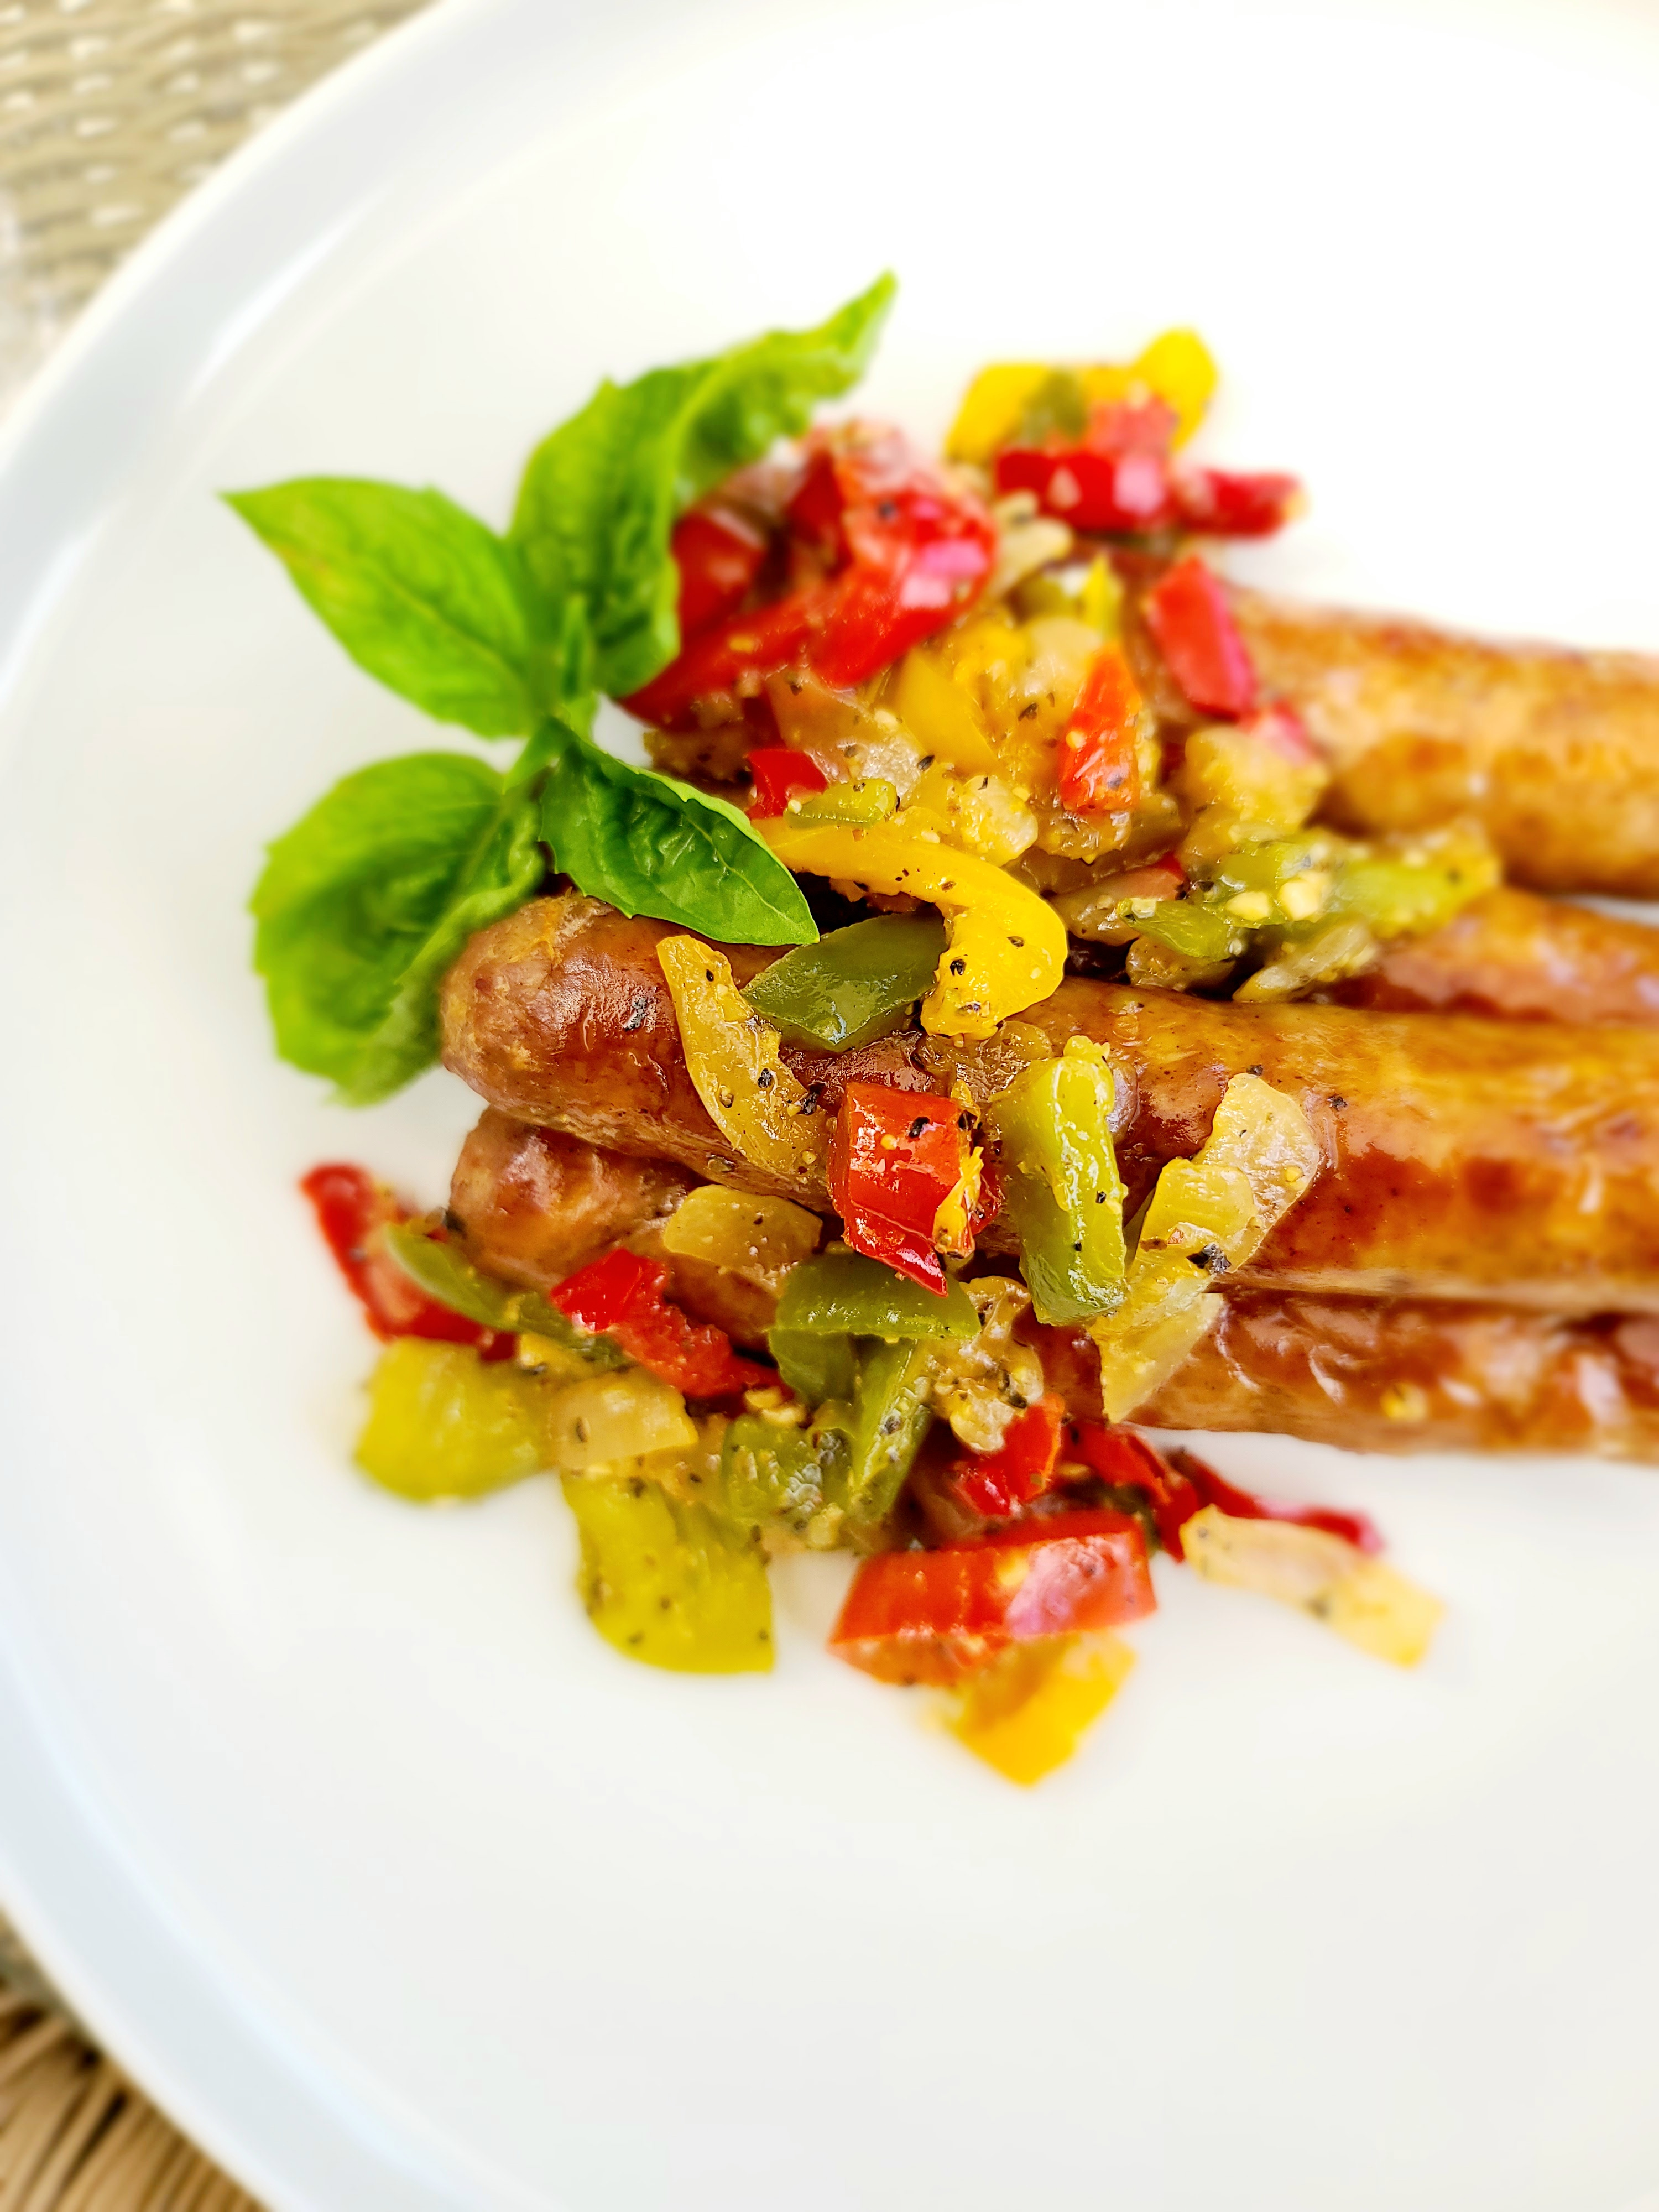 Grilled Italian Sausage with Peppers and Onions Nicolette